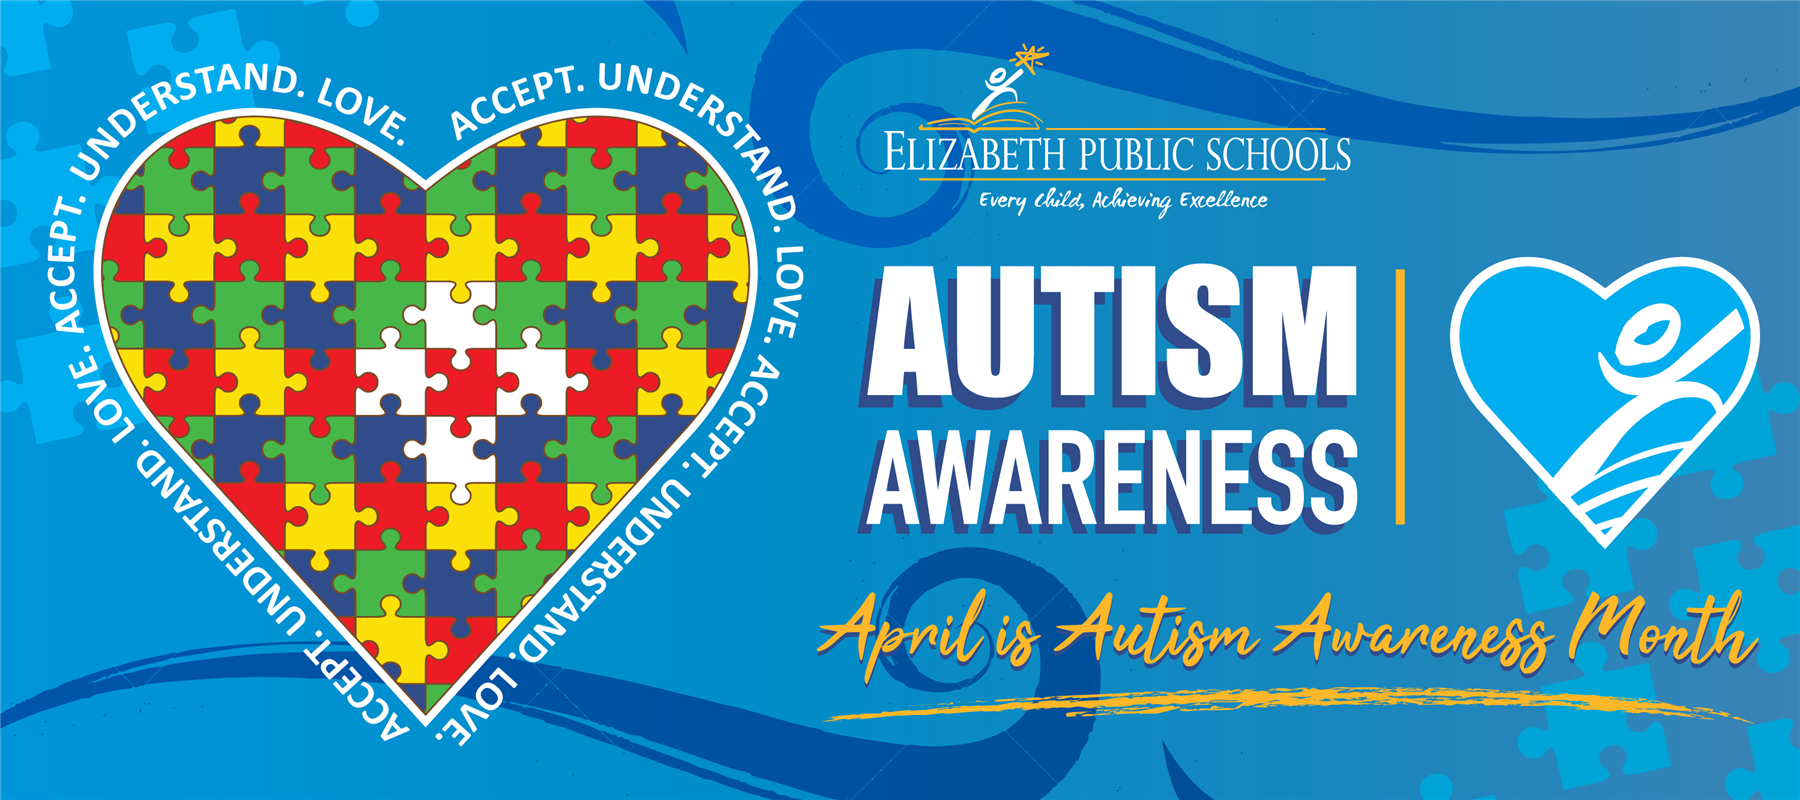 April 1 marks the beginning of Autism Awareness Month